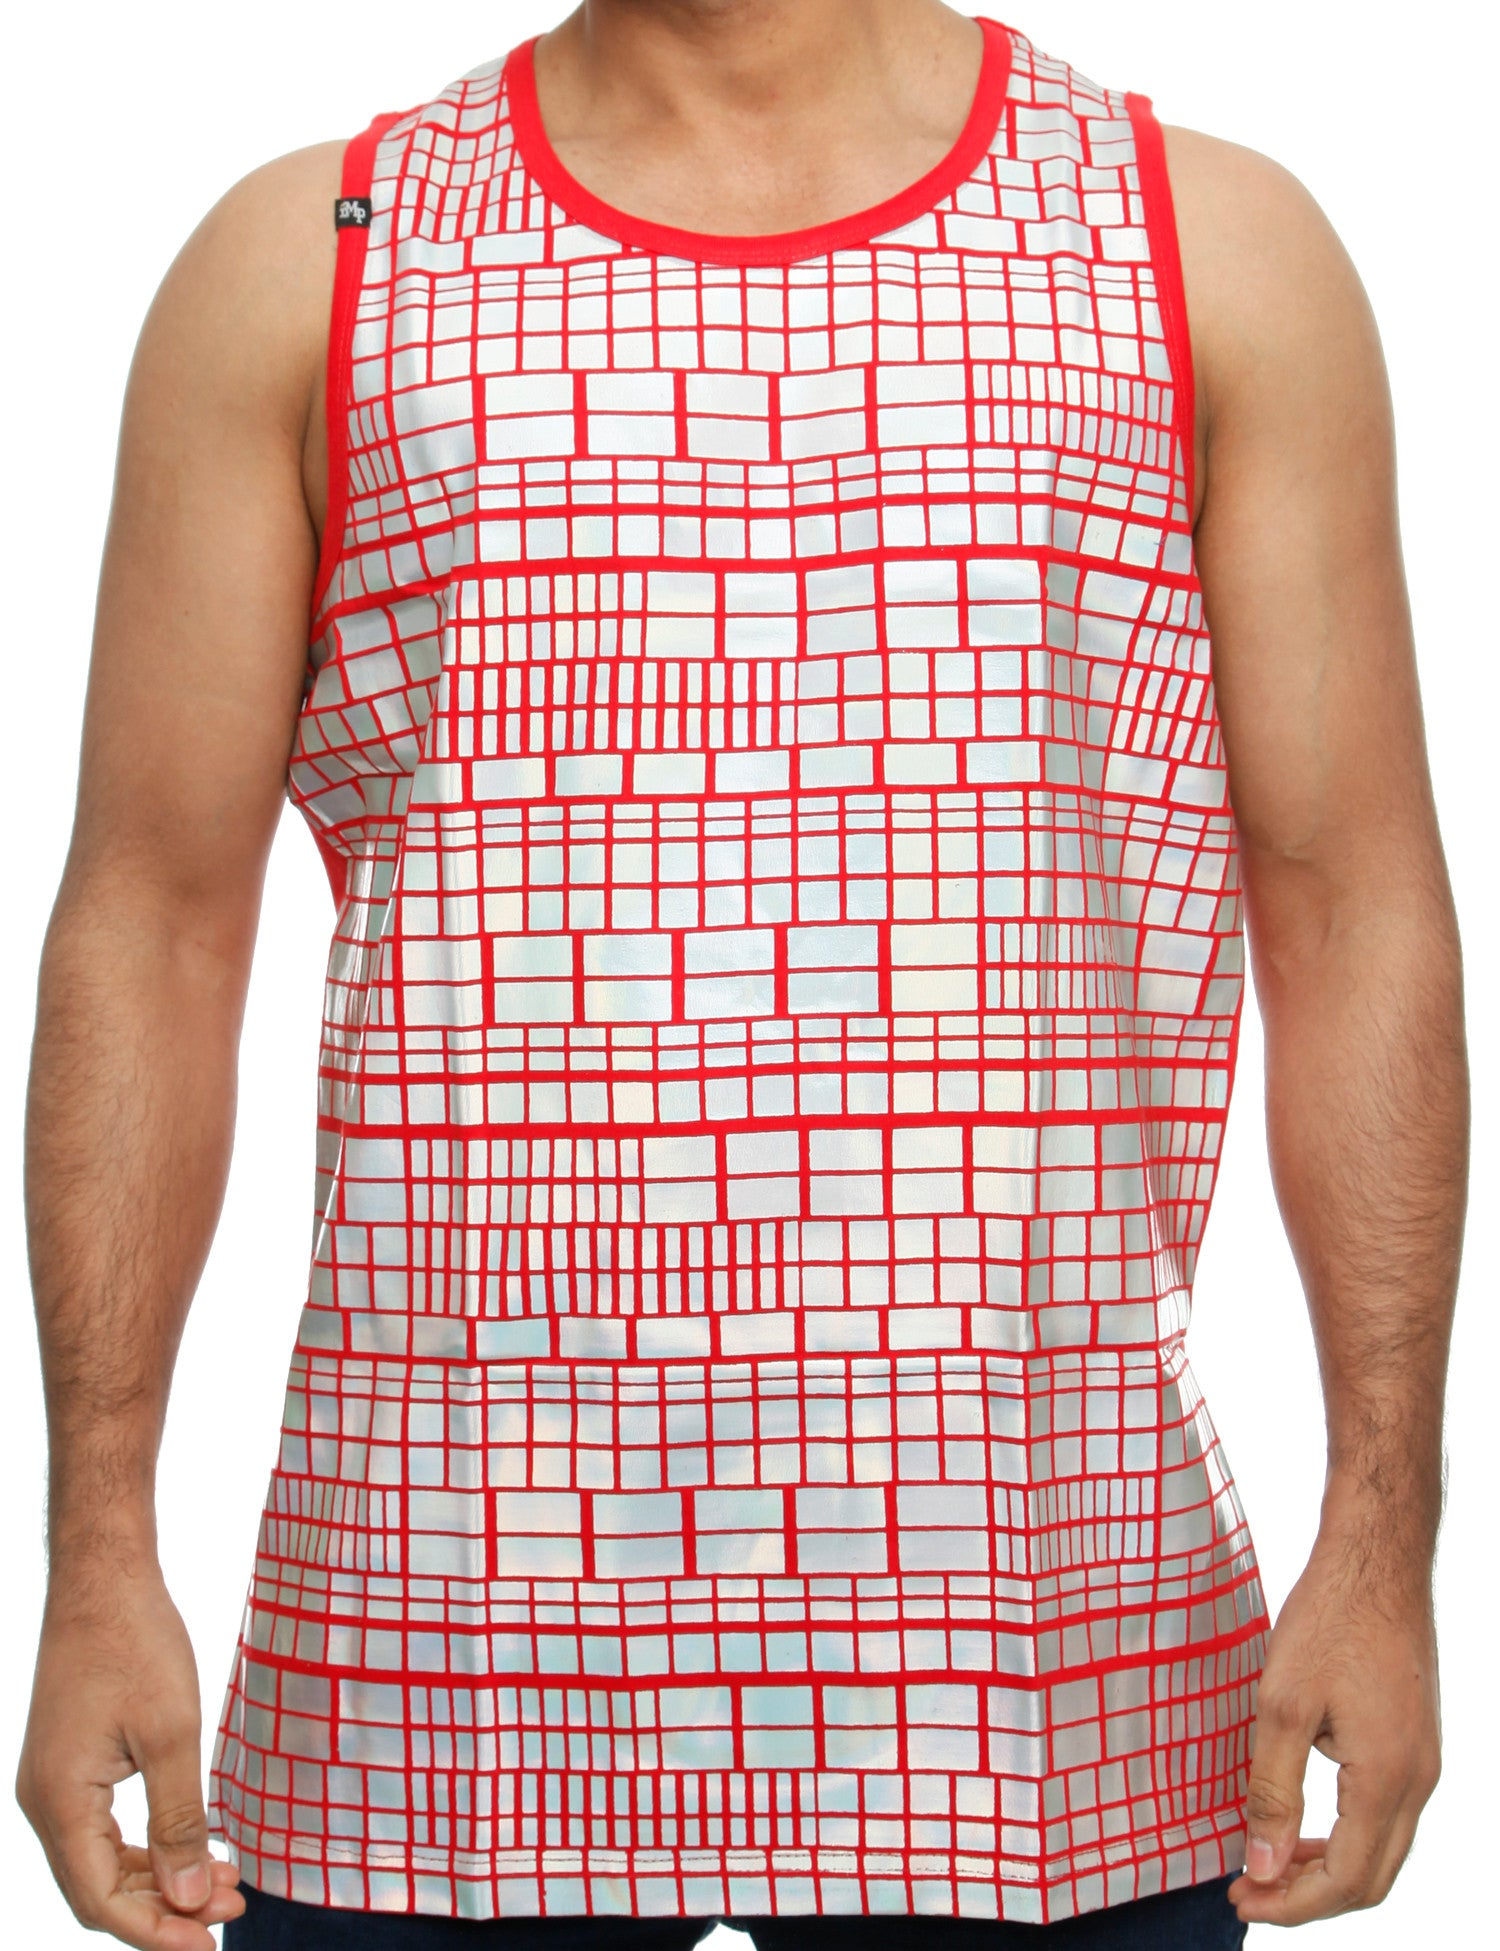 Imperious Tank Top TT516 Red